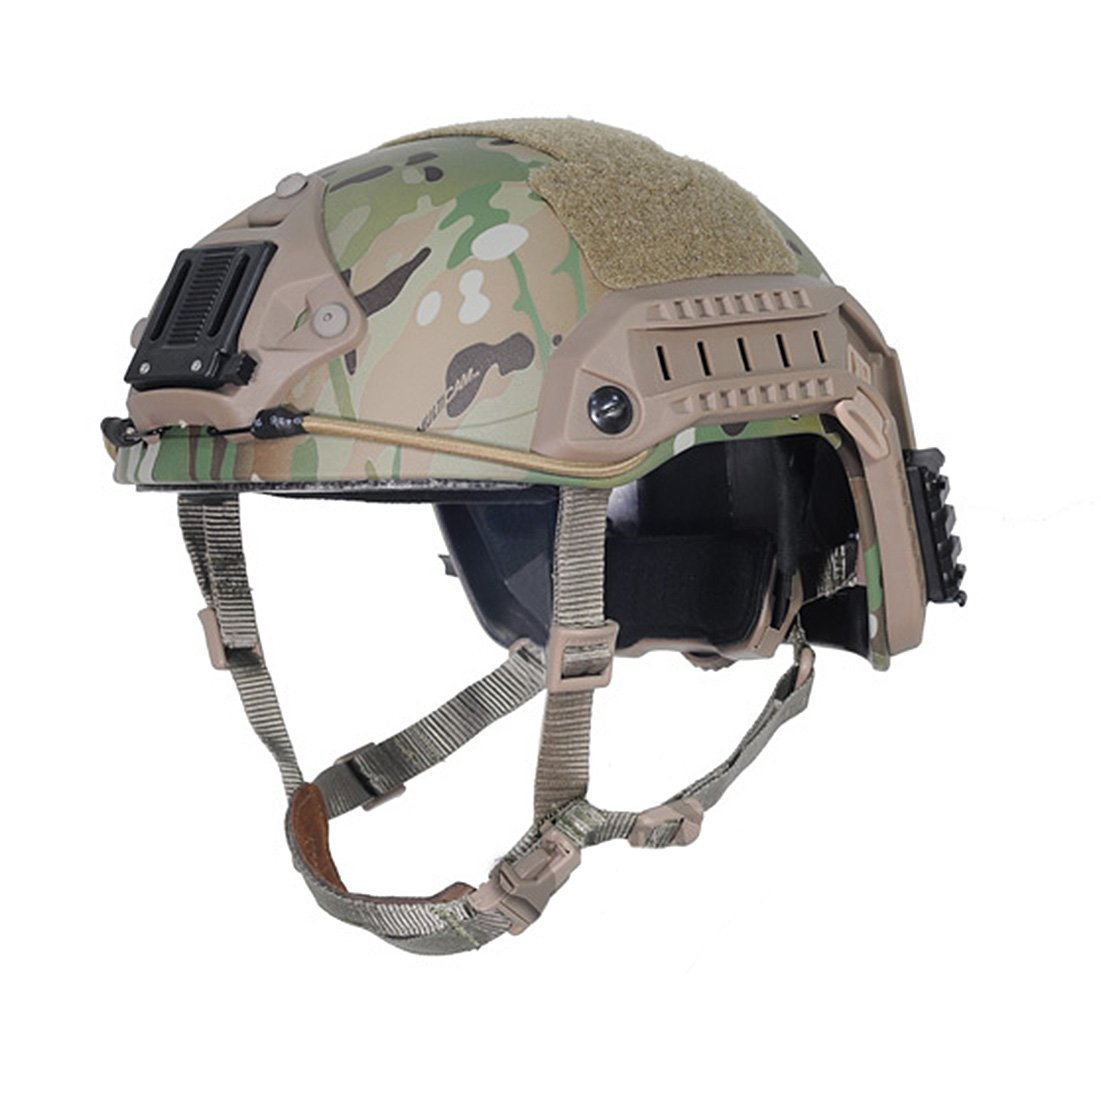 H World Shopping Tactical Adjustable ABS Maritime Helmet Multicam MC , Two Sizes (M / L, L / XL) For Military Airsoft Paintball Hunting Shooting (M/L) by H World Shopping